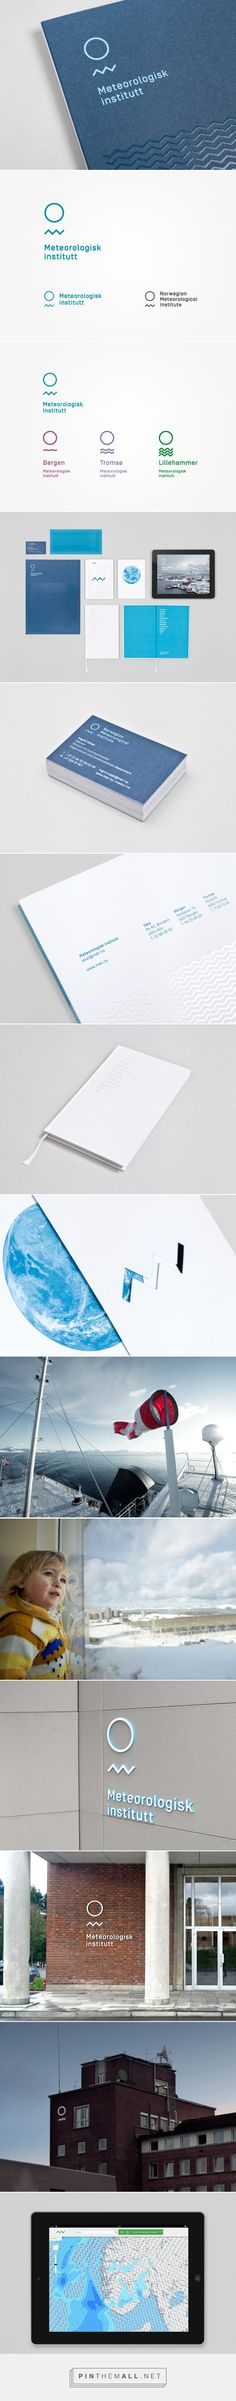 New Logo and Branding for Meteorologisk Institutt by Neue - BP&O - created via https://pinthemall.net